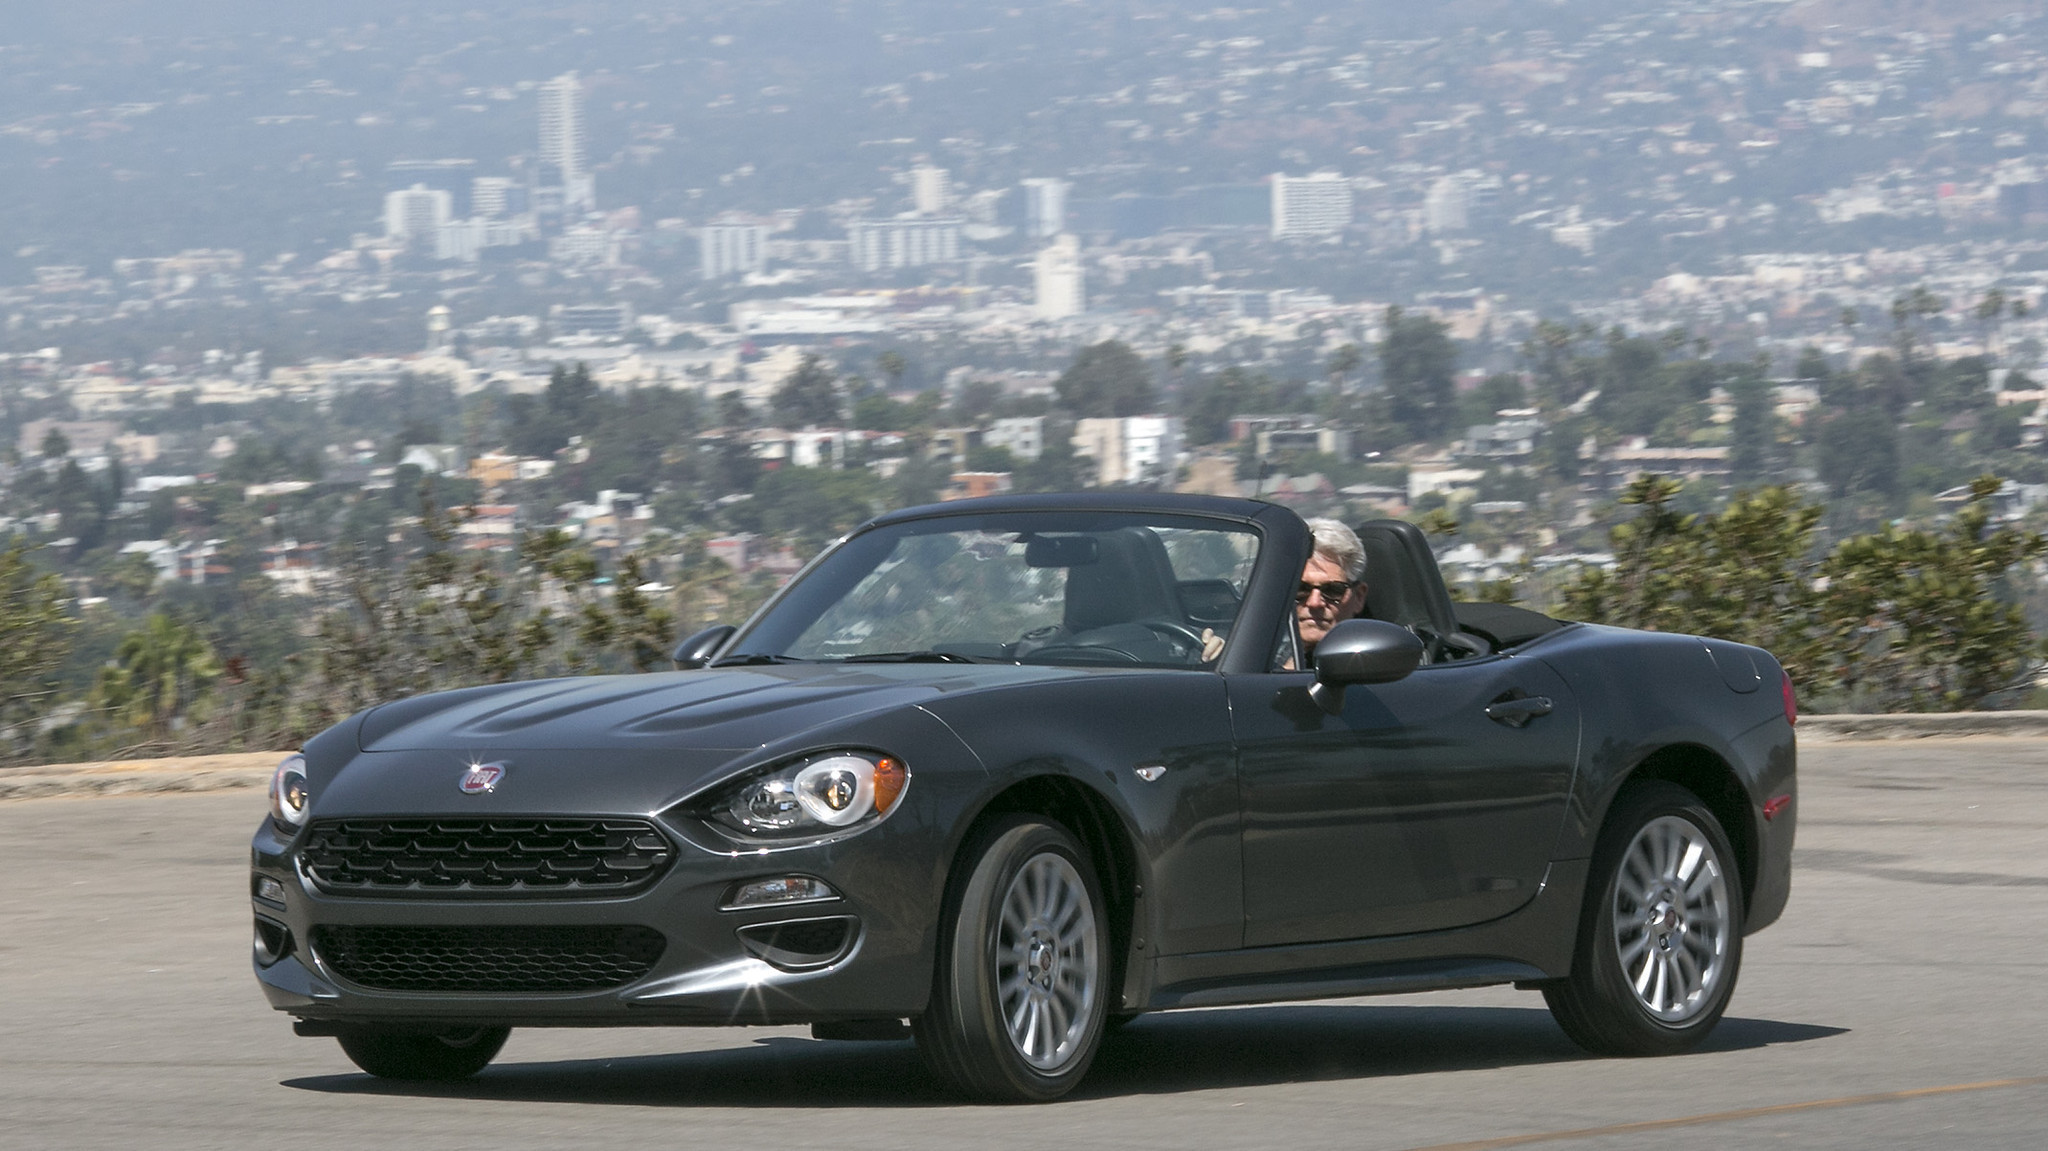 fiat 124 spider review it 39 s not a 39 fiata 39 after all orlando sentinel. Black Bedroom Furniture Sets. Home Design Ideas